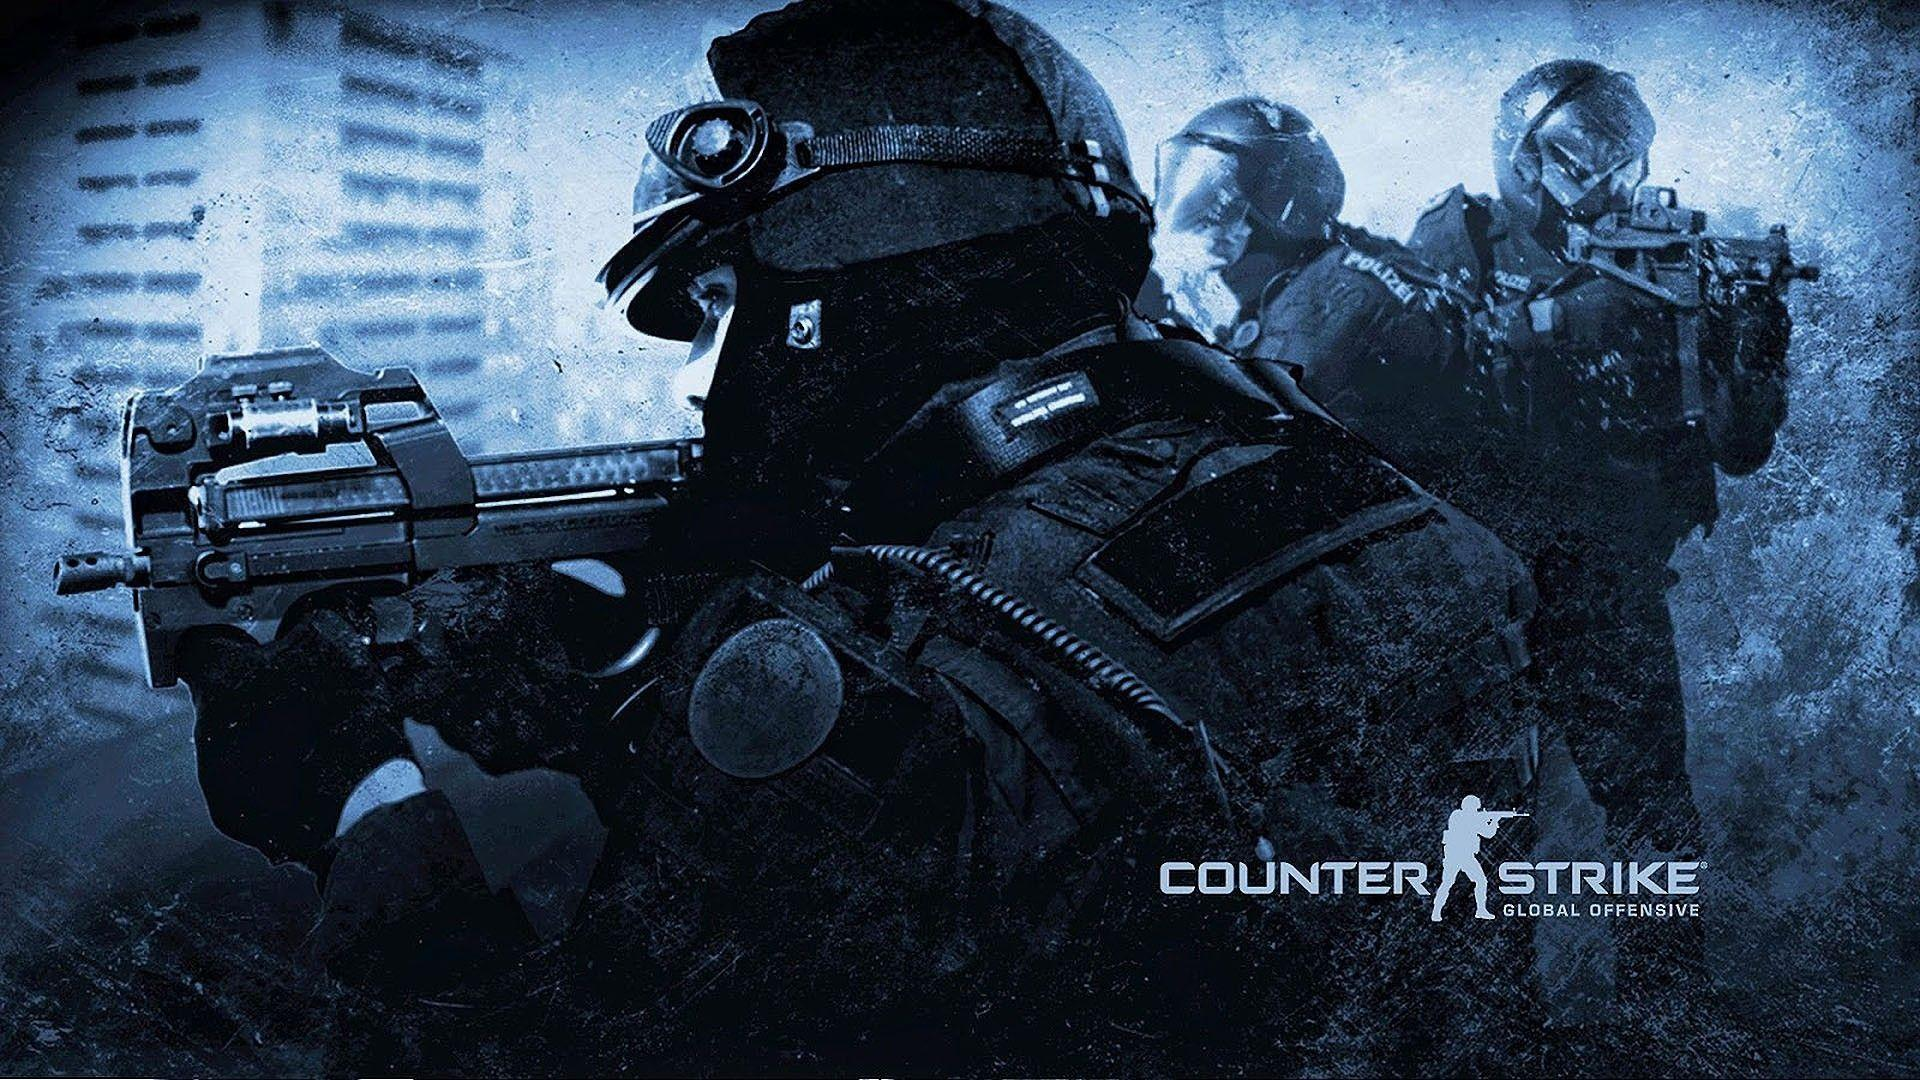 Counter Strike wallpaper | 1920x1080 | #7690